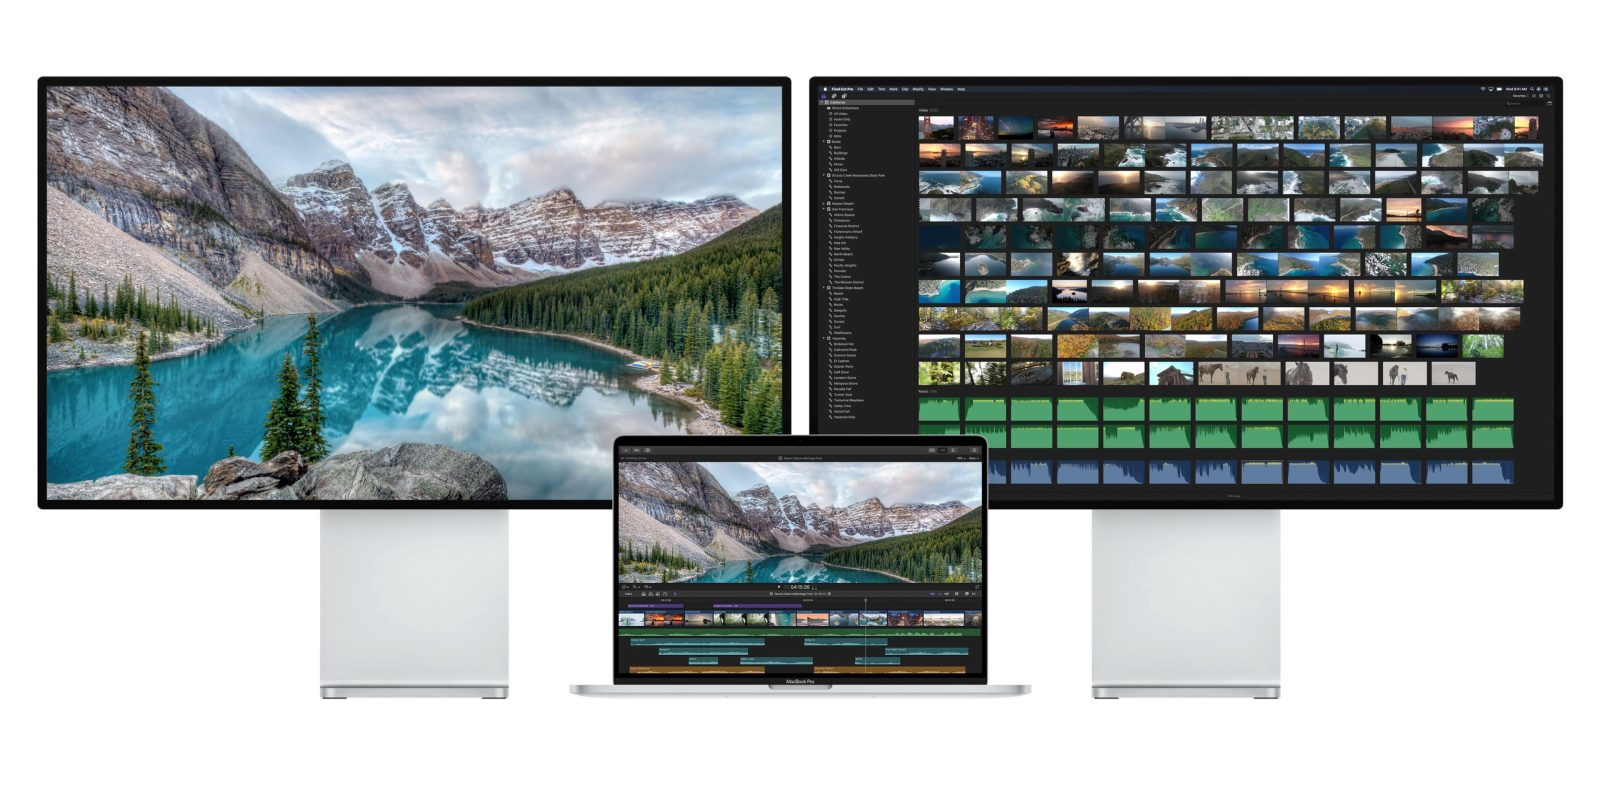 Here are the Macs that will work with the Pro Display XDR, plus workaround for older Macs